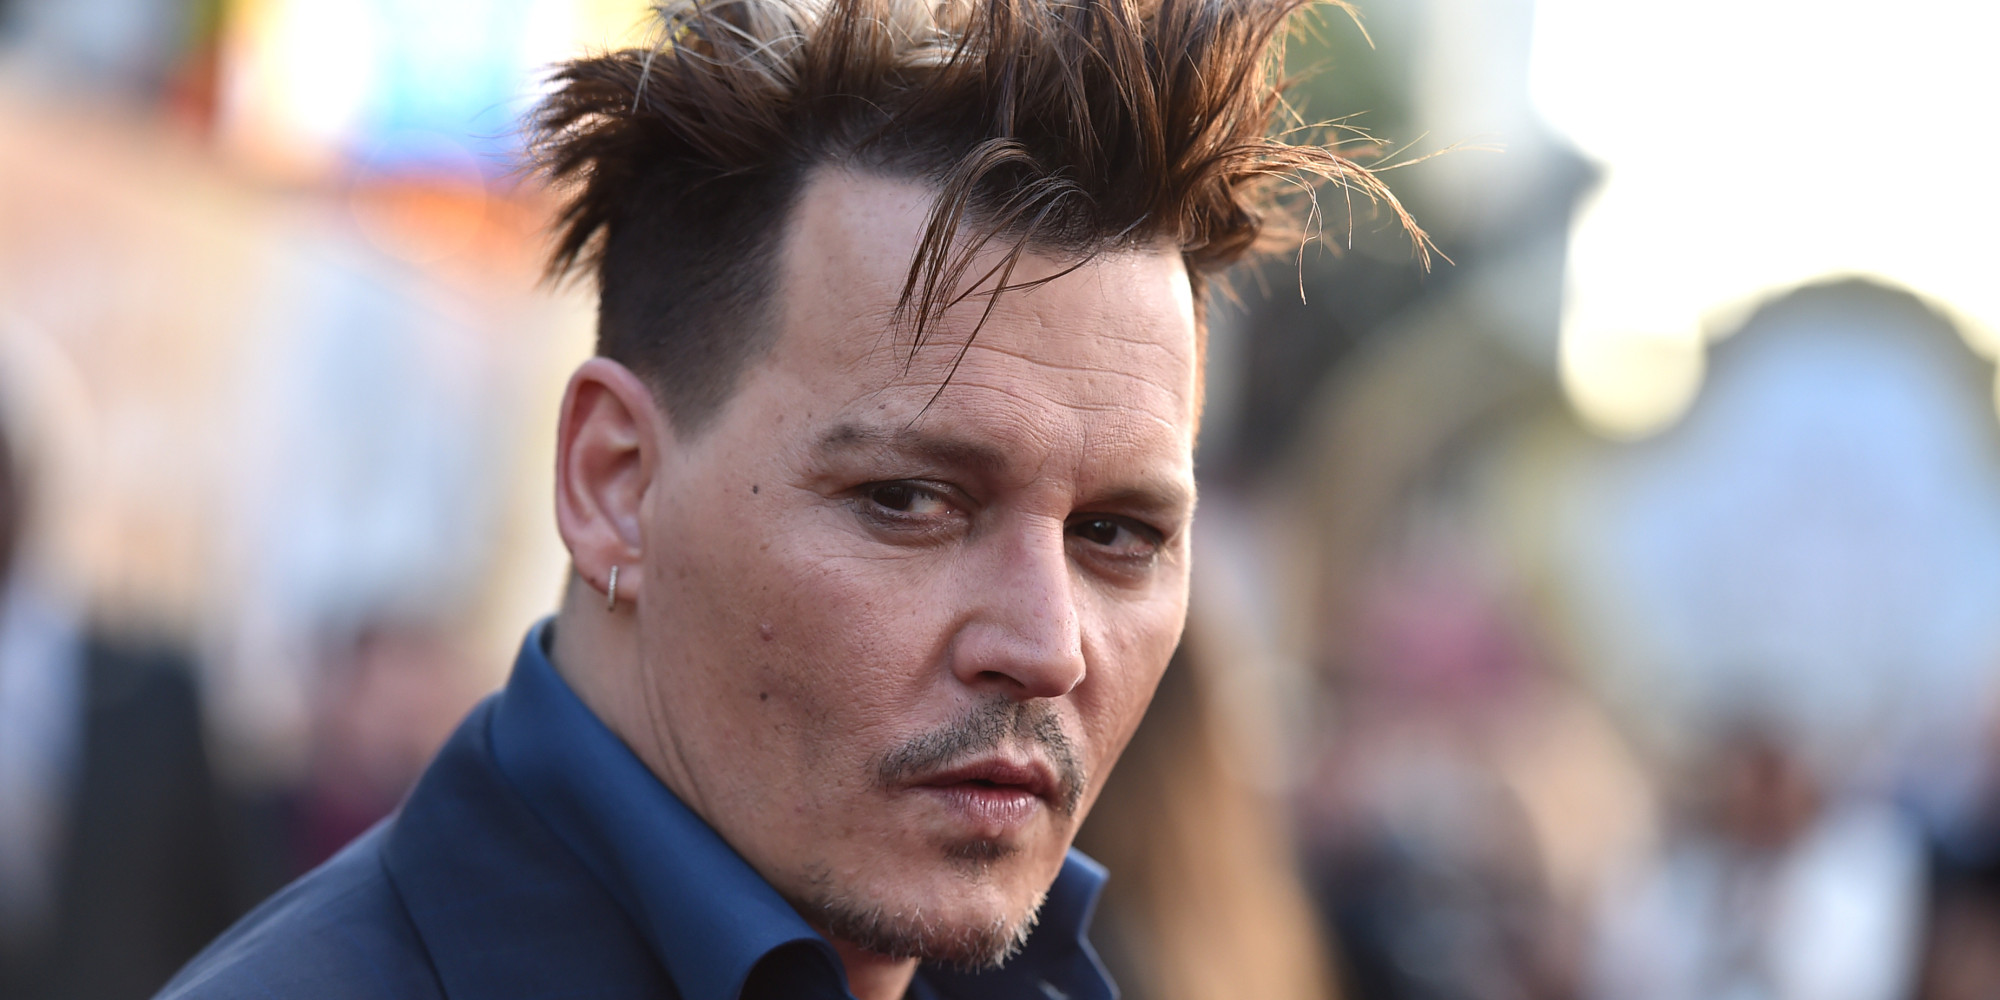 how to get hair like johnny depp